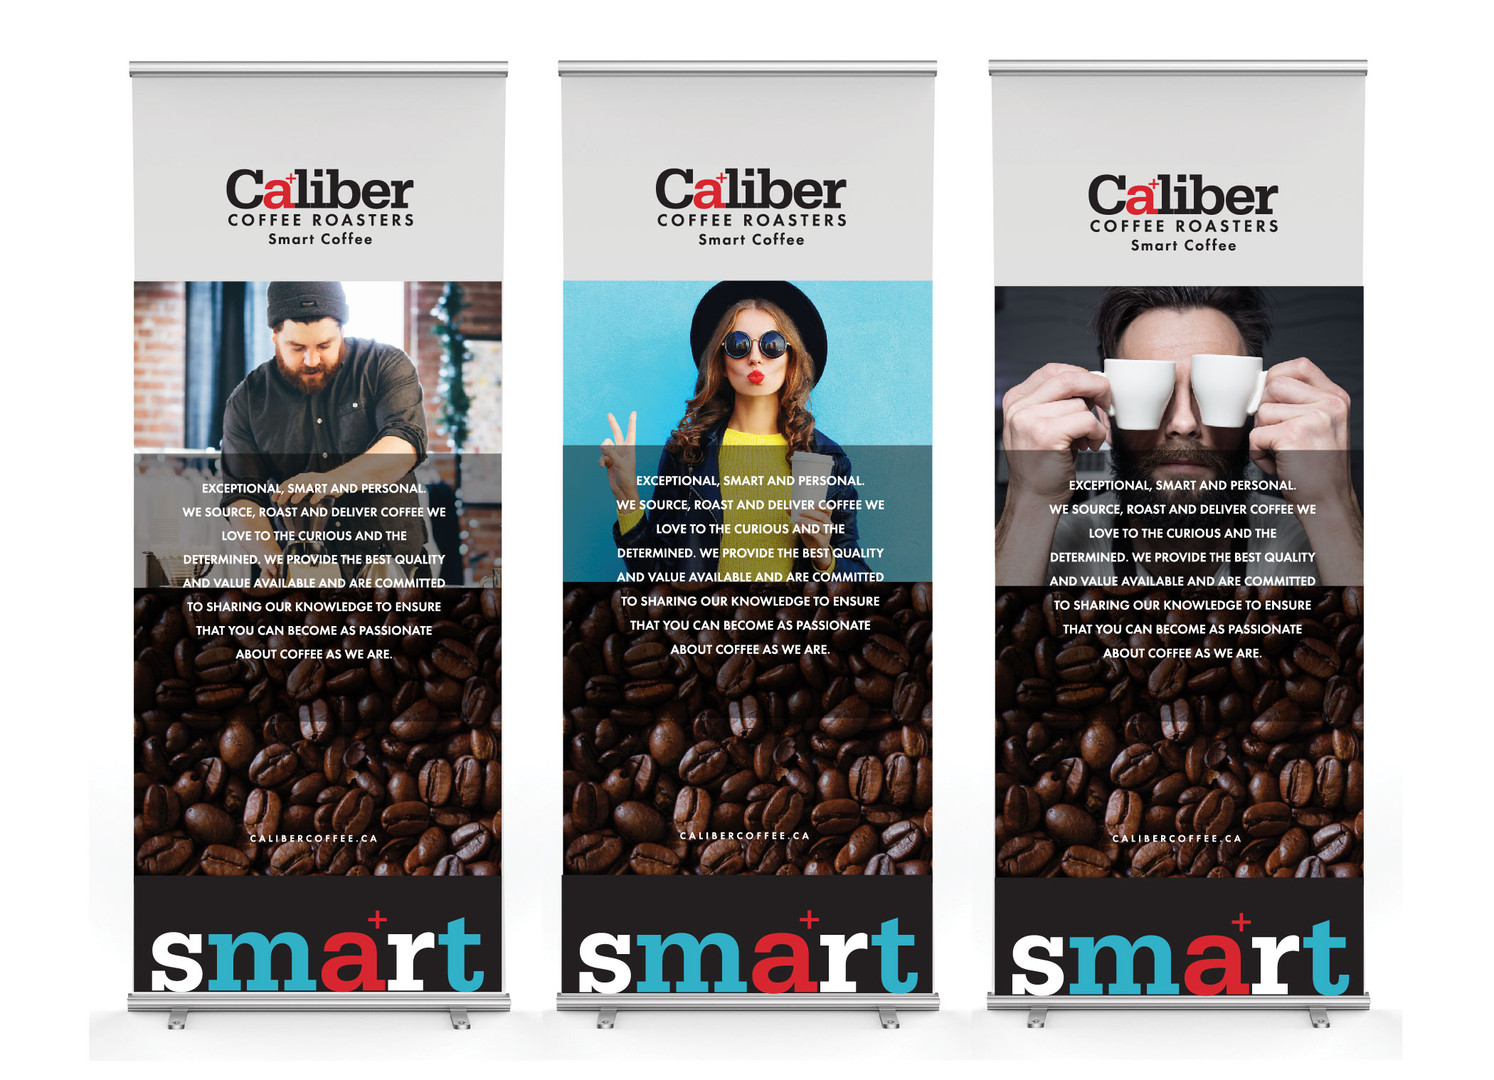 Caliber Coffee Roasters